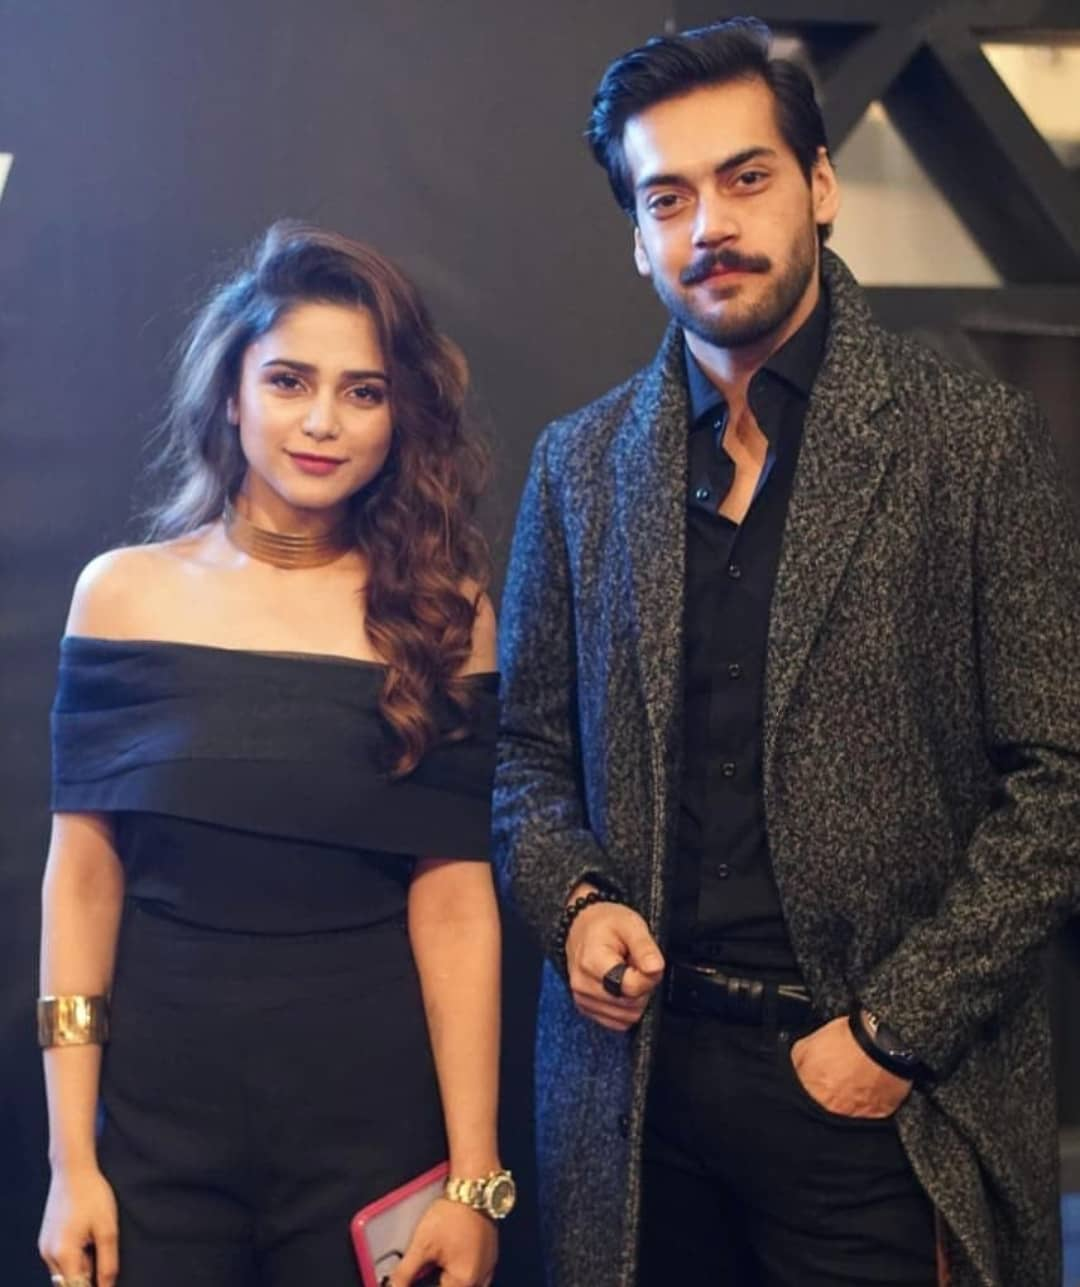 Beautiful Singer Aima Baig with her Friend Shahbaz Shigri at an Event